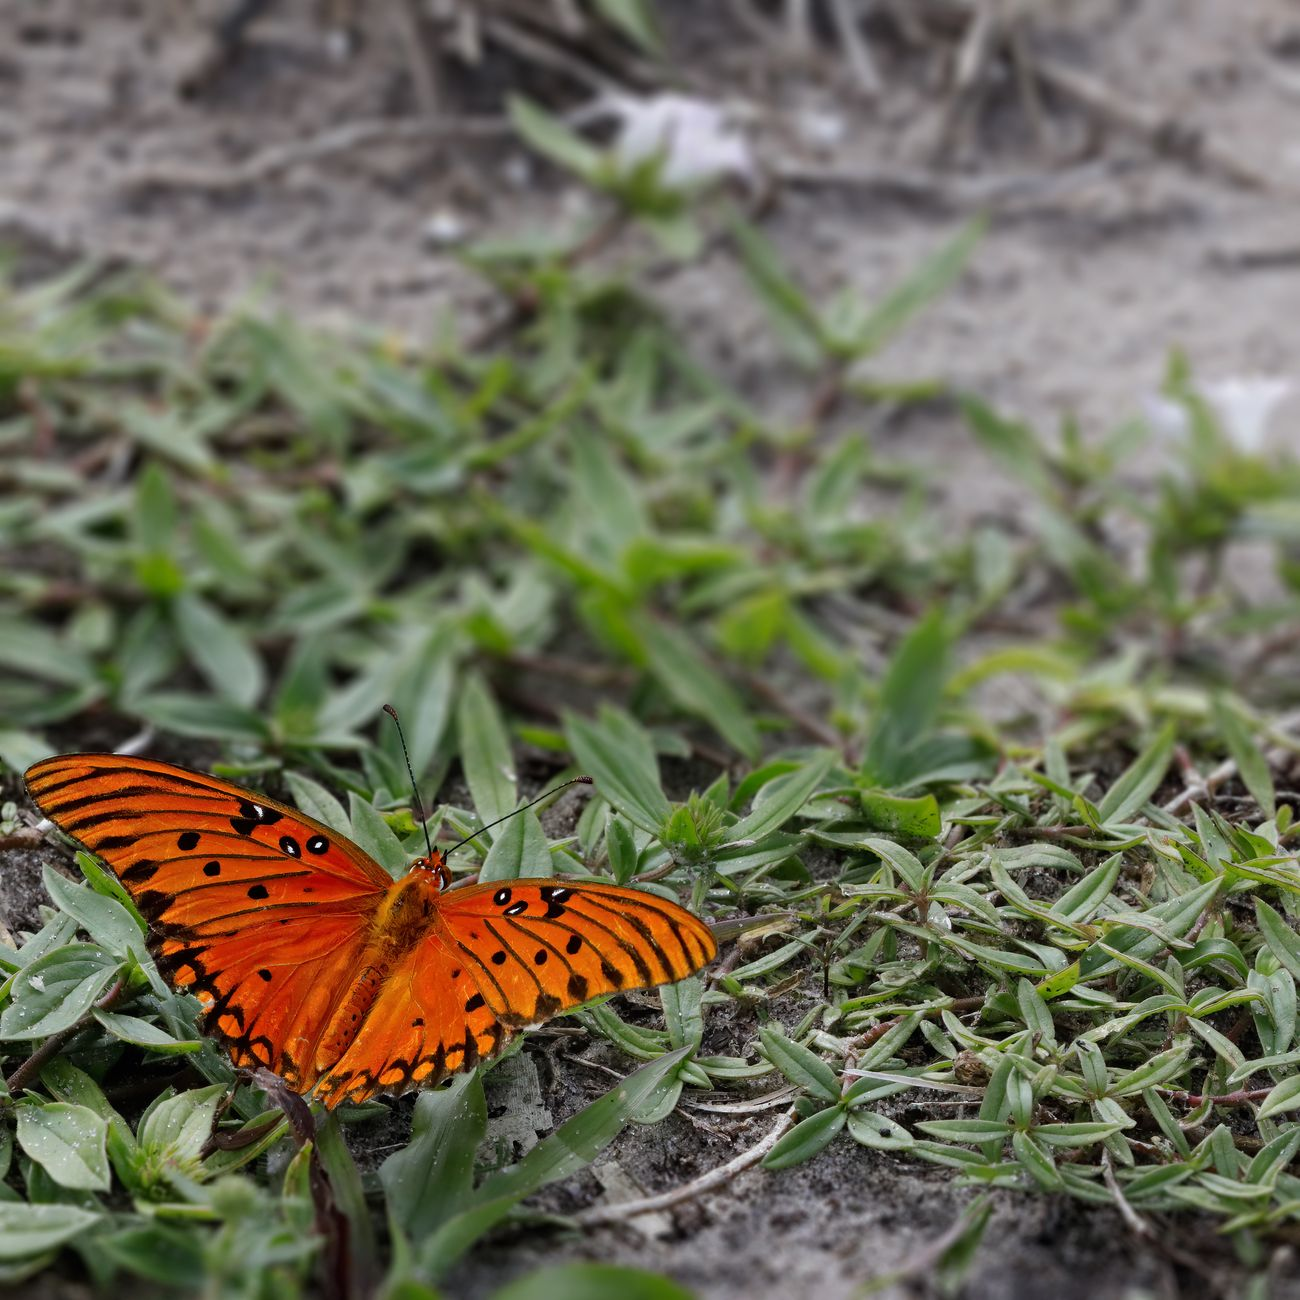 A red butterfly against low green vegetation and gray sand in the Everglades.